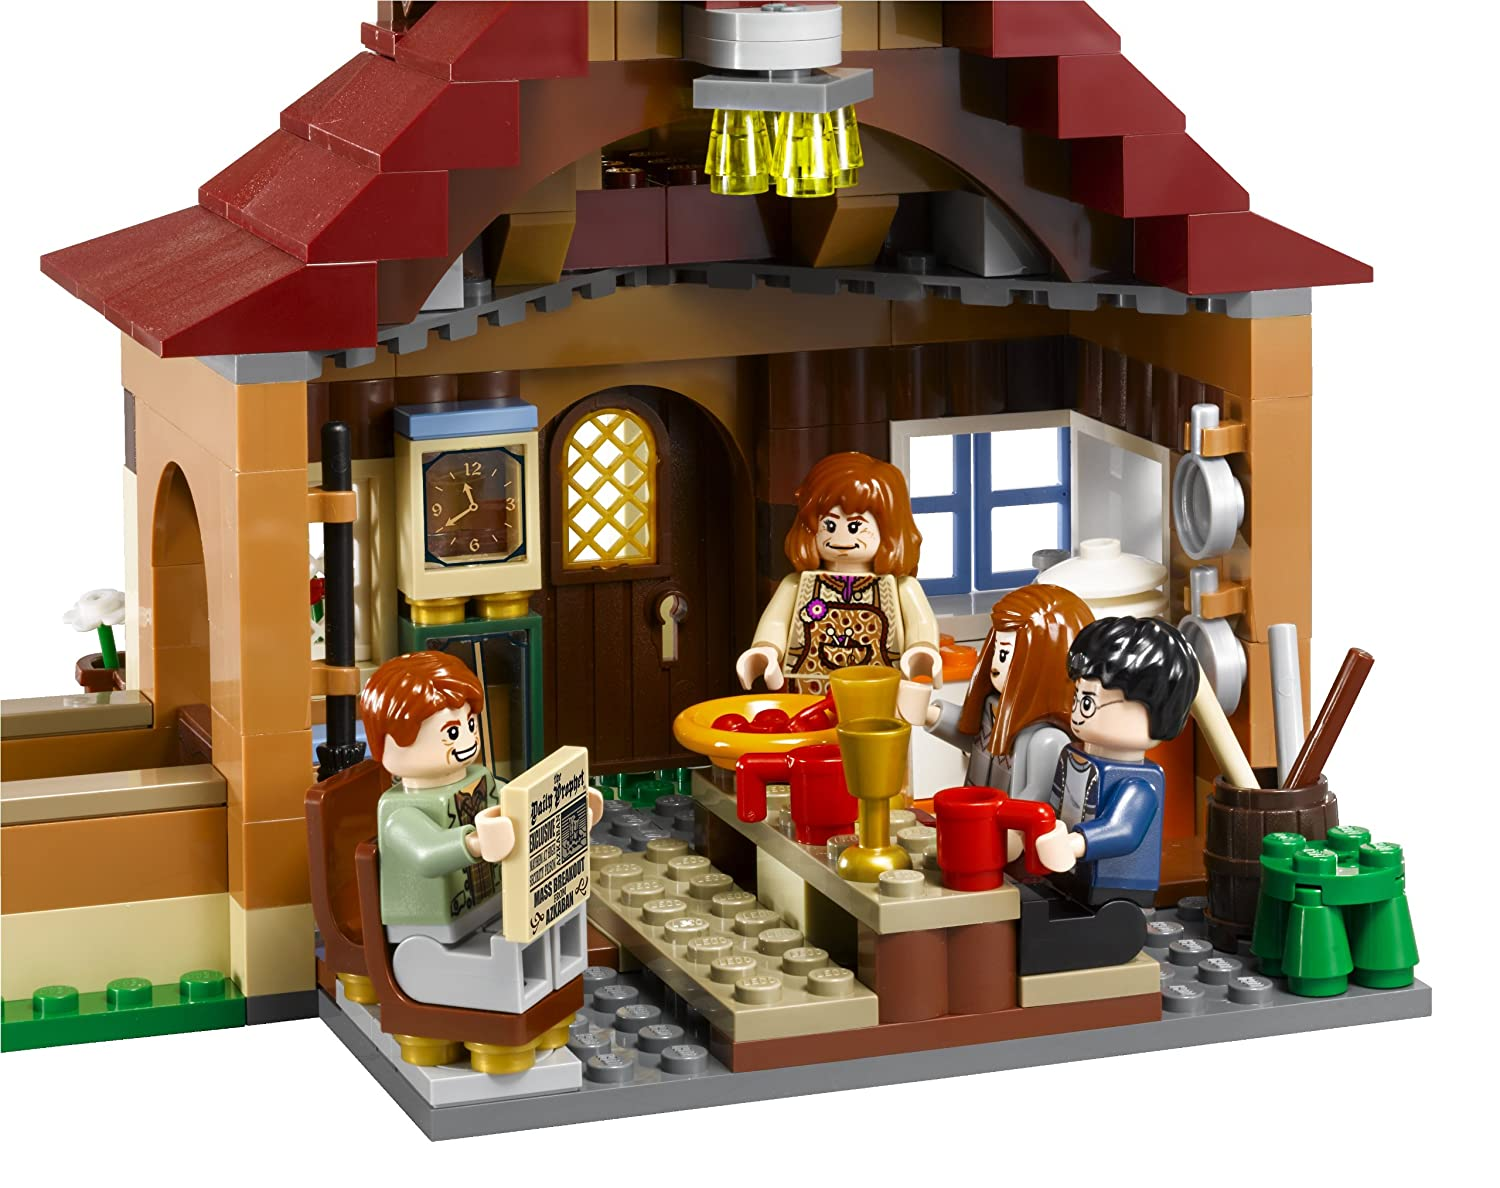 Burrow Harry Potter Lego Lego Harry Potter The Burrows